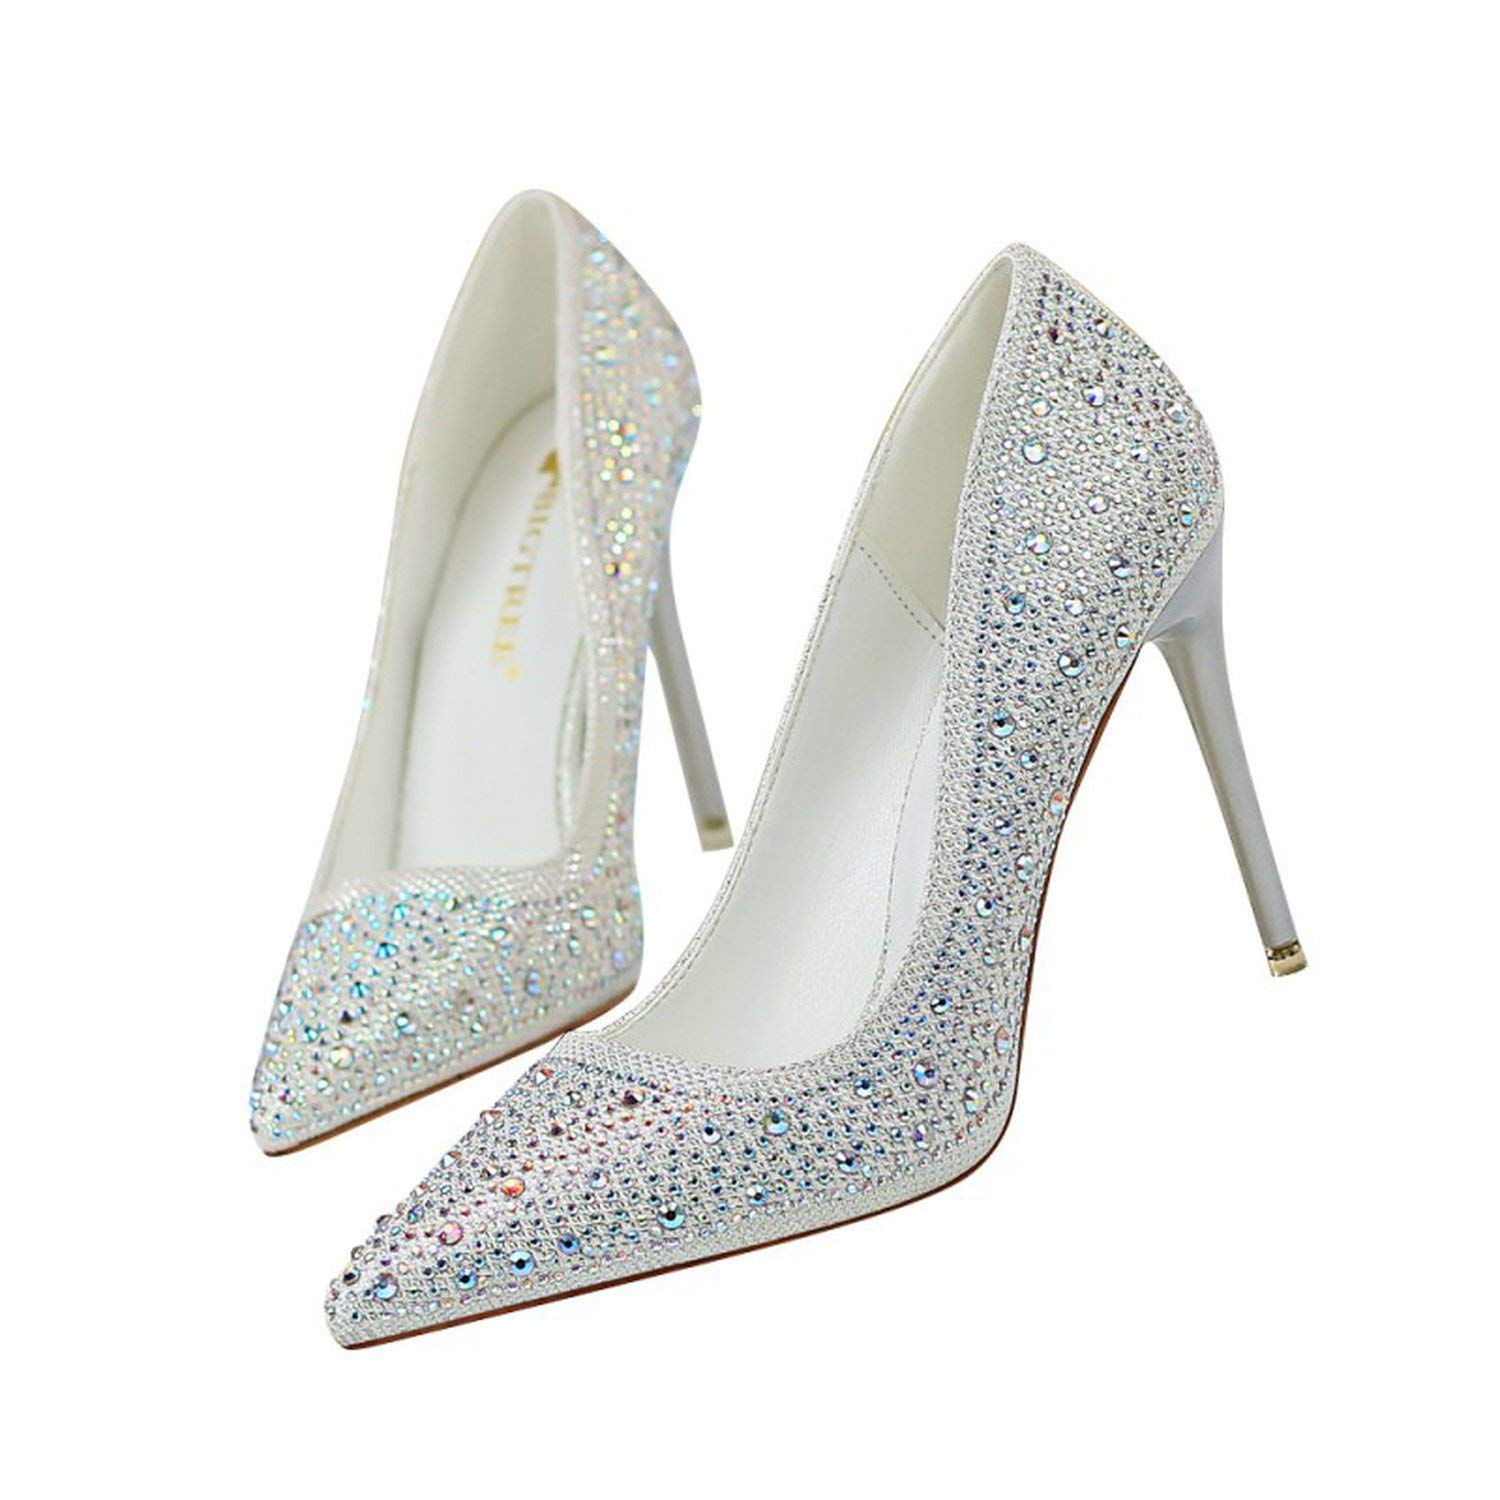 White coolemon 2019 Spring Wedding Party Women Pumps shoes Woman High Heels Female Crystal Bling Nightclub Stilettos Pointed Toe shoes